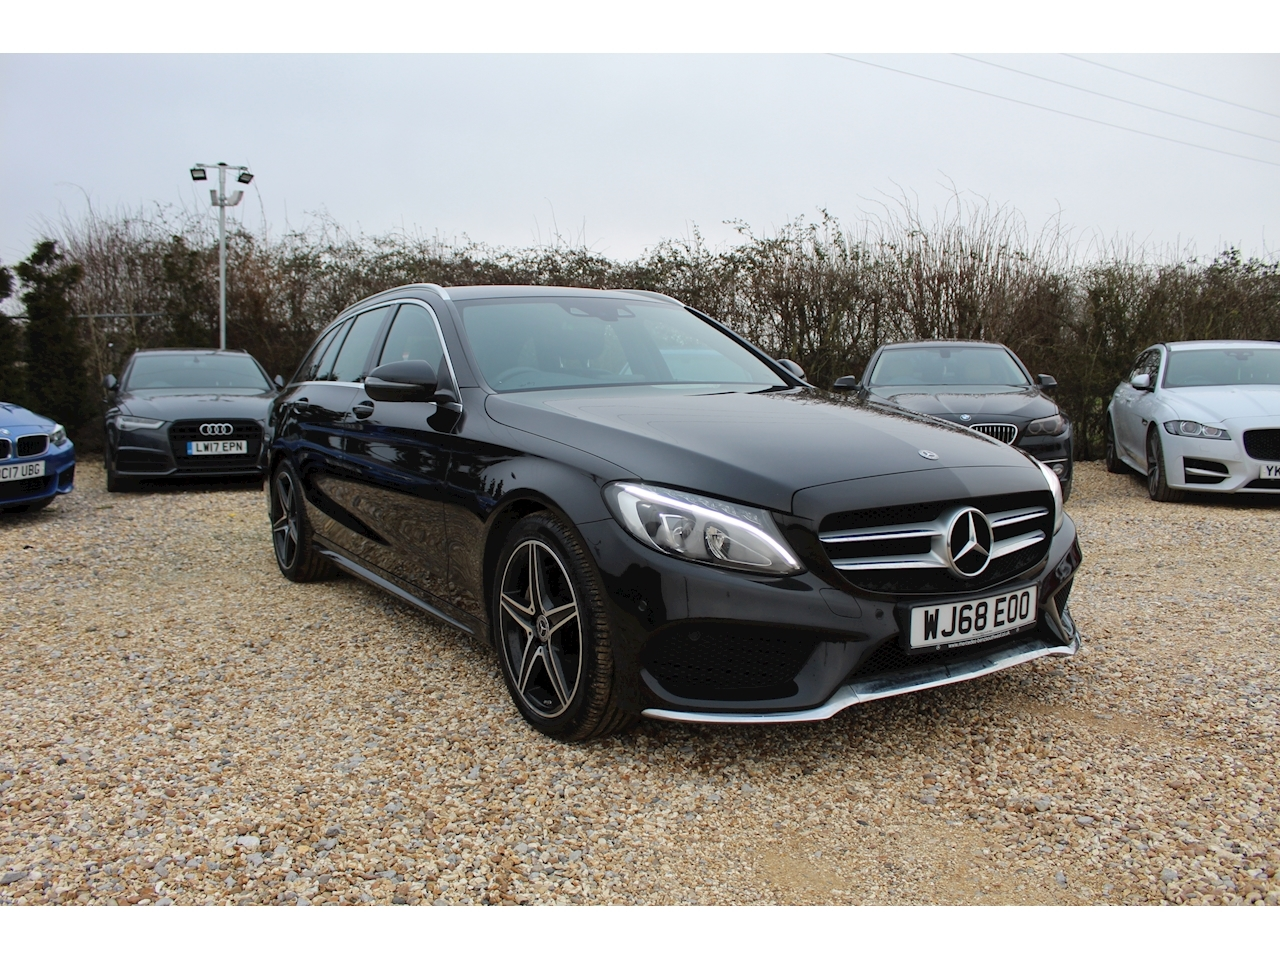 Mercedes-Benz 2.1 C220d Nightfall Edition Estate 5dr Diesel G-Tronic+ (s/s) (170 ps)